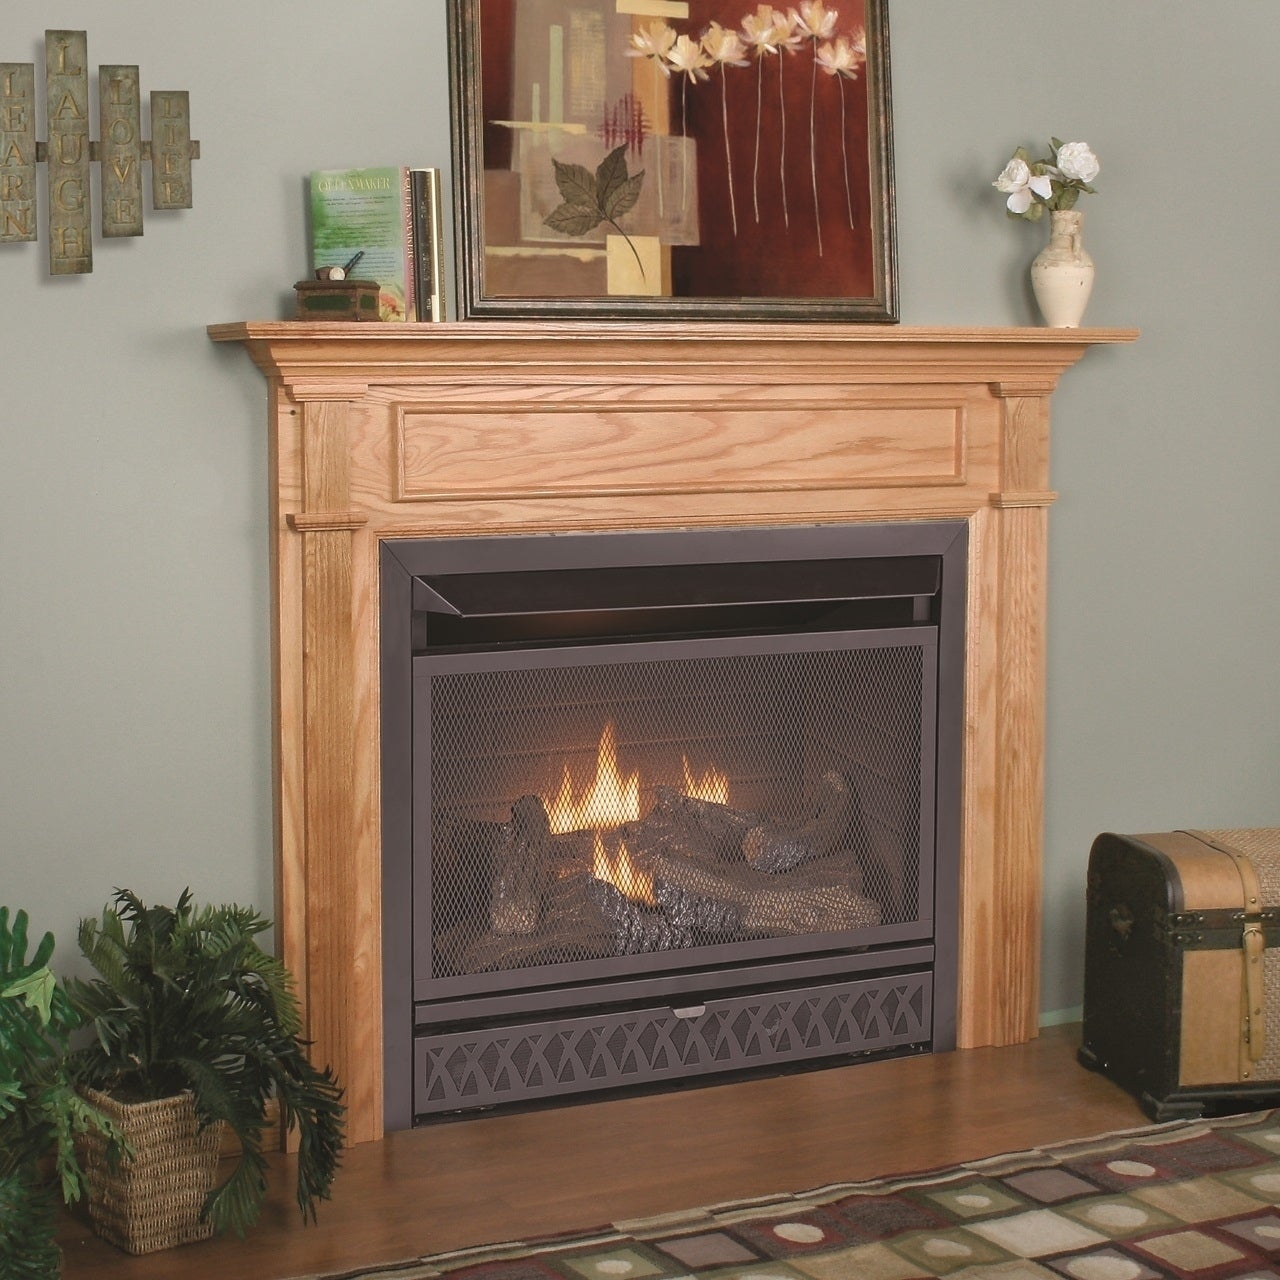 Procom Fireplaces 29 In Ventless Dual Fuel Firebox Insert Fbnsd28t Free Shipping Today 21162489